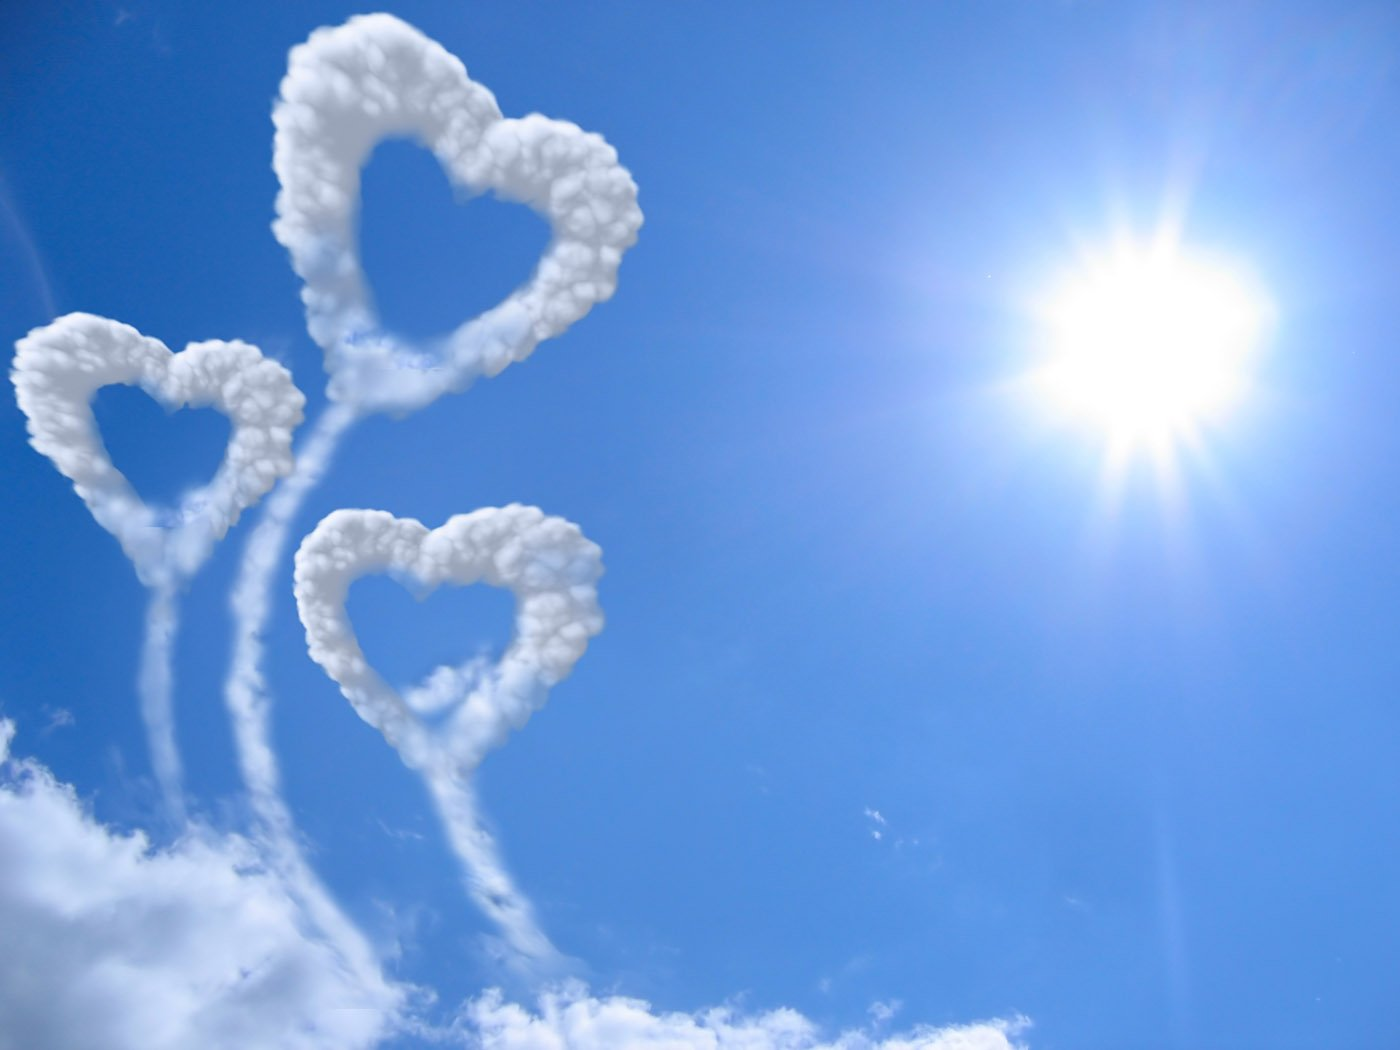 Free Download Day Heart Shaped Cloud Wallpapers Art For Your